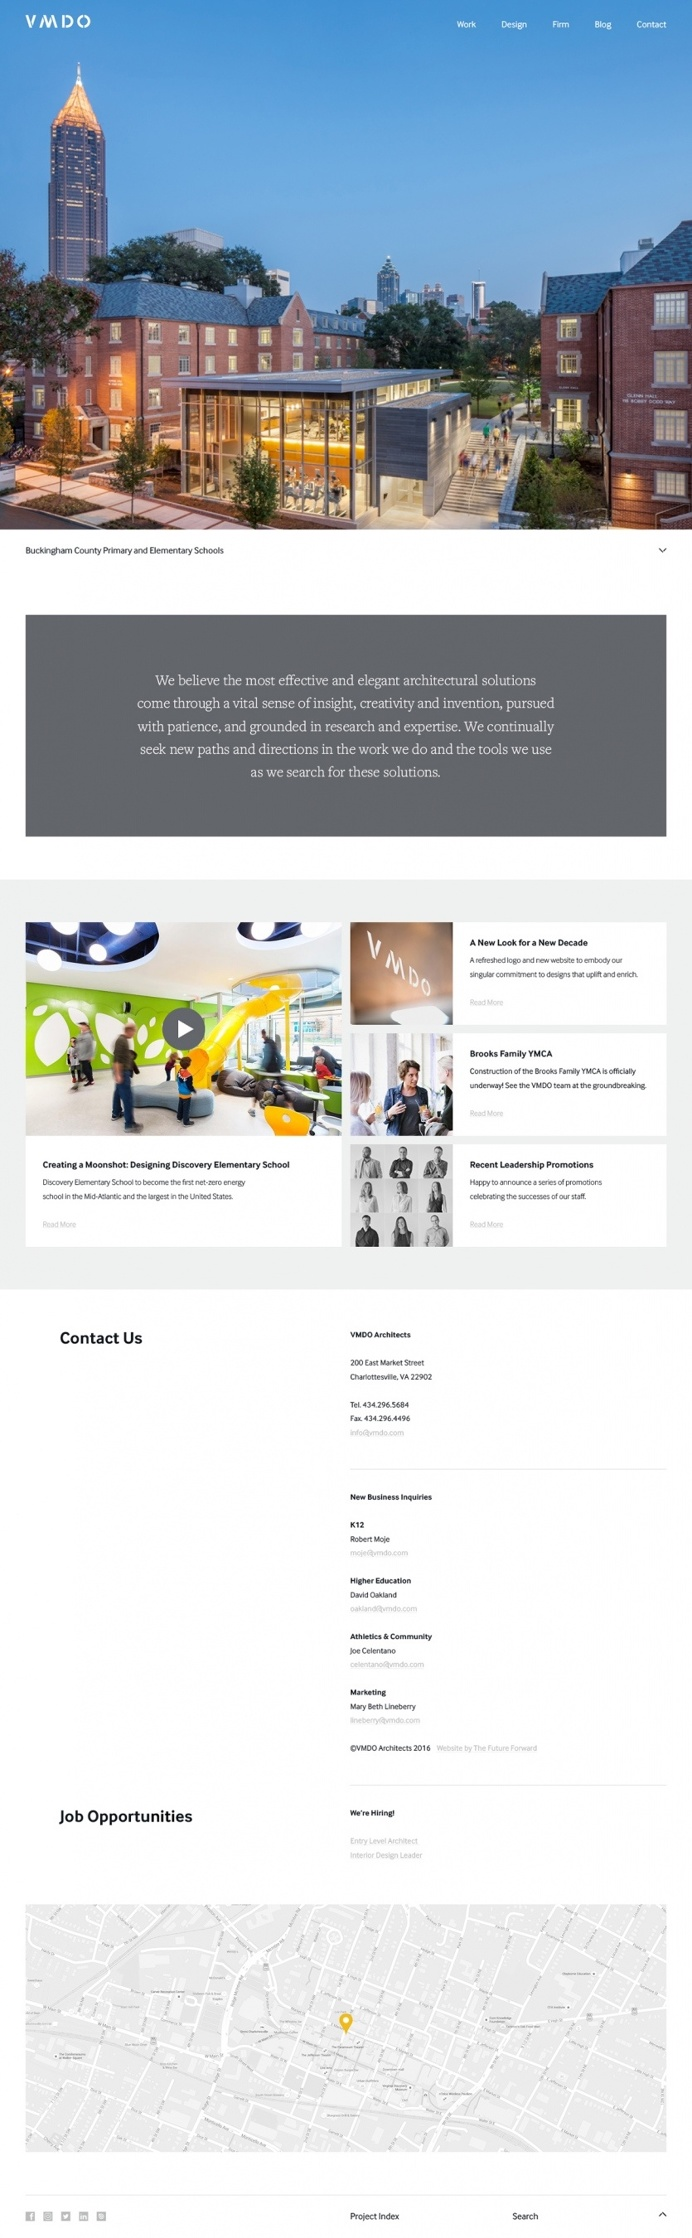 VMDO Architects webdesign feature site of the day beautiful best inspiration designblog mindsparkle mag